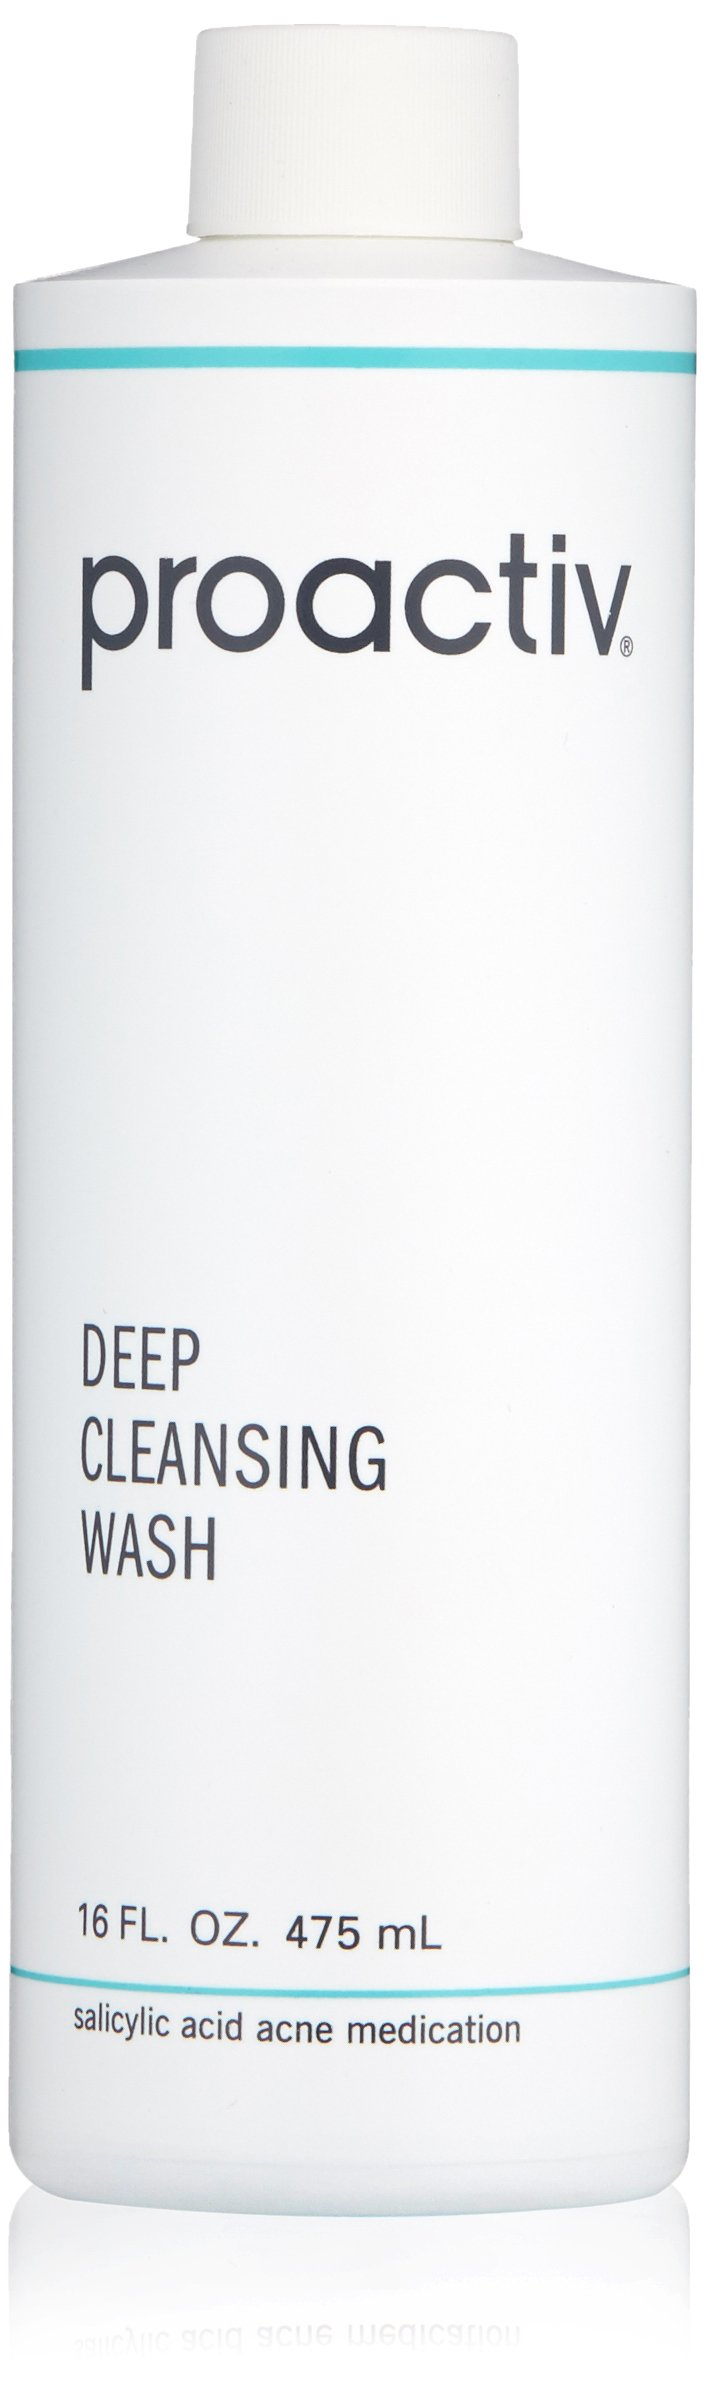 Proactiv Deep Cleansing Wash, 16 Ounce (90 Day) by Proactiv